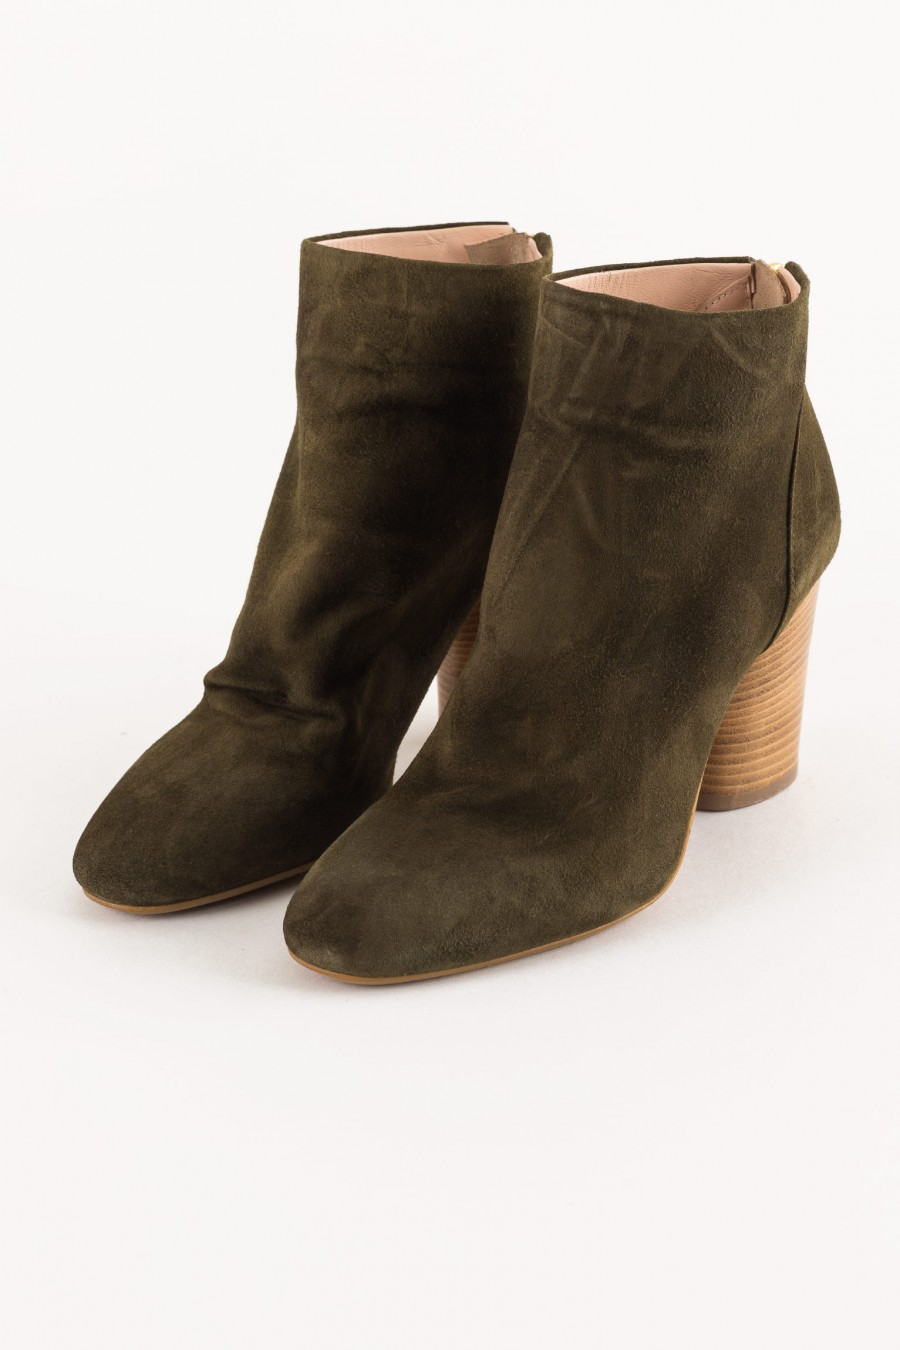 military-colored boot